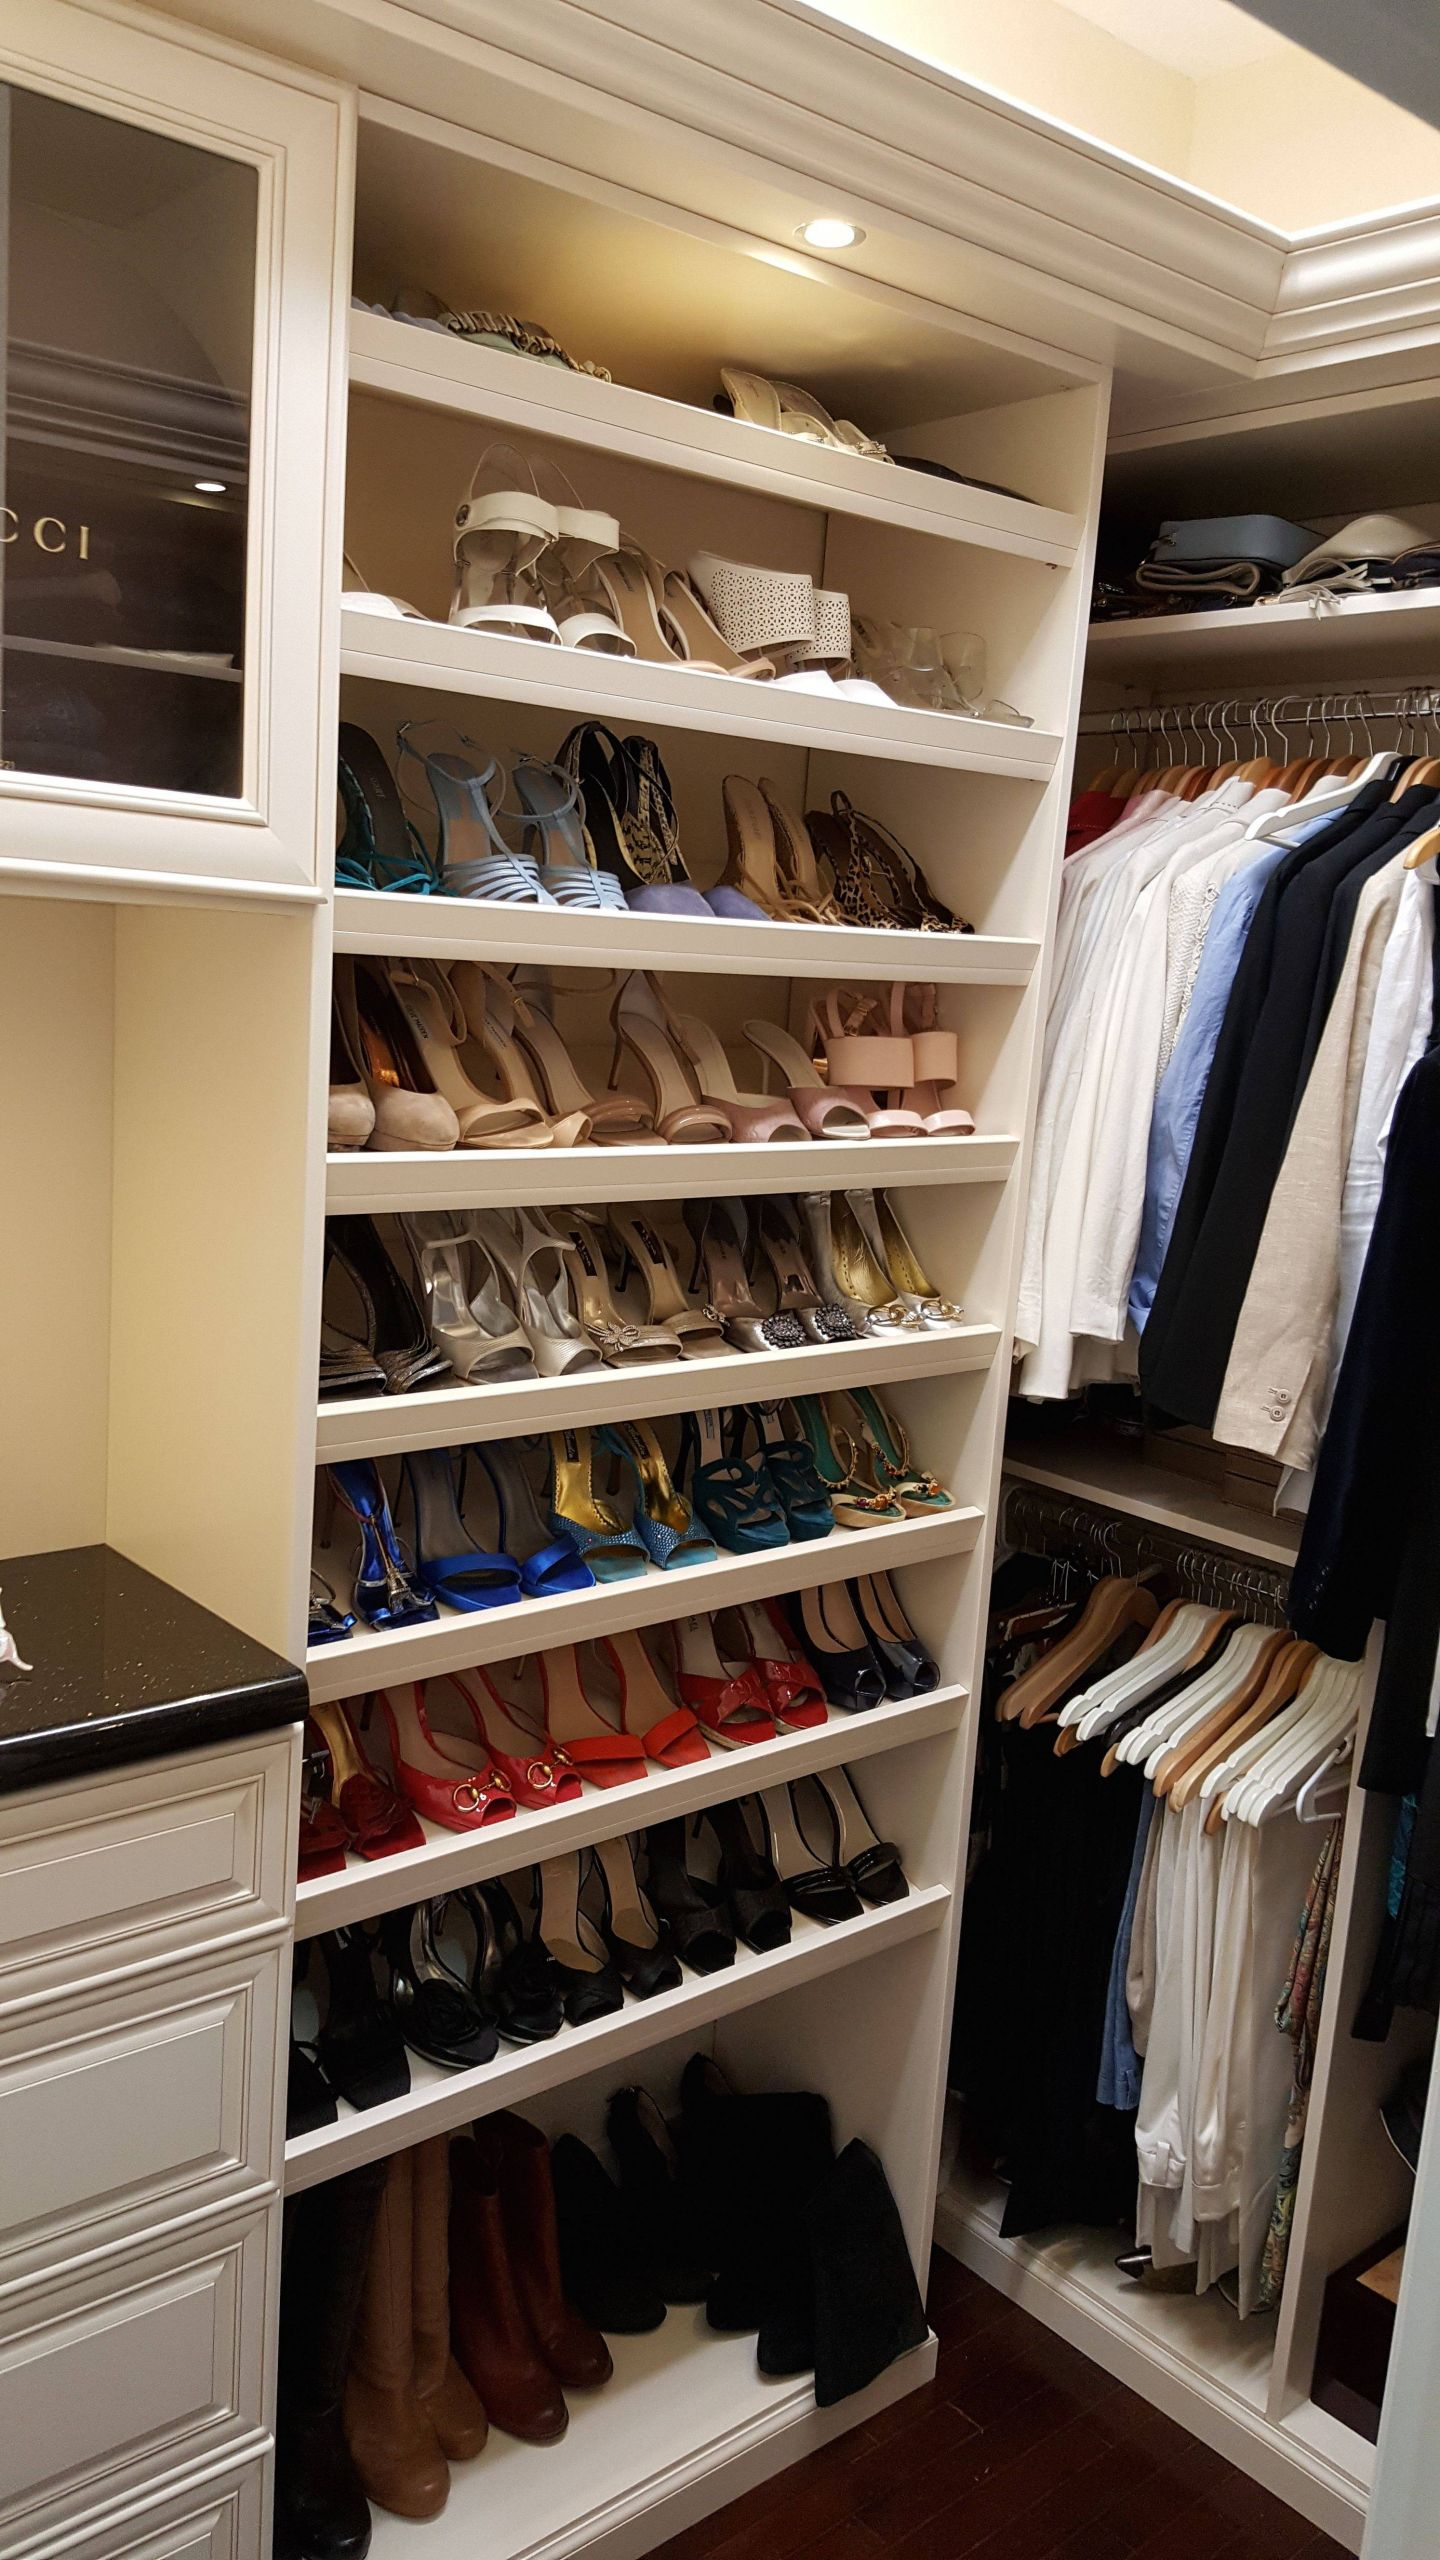 Walk In Closet Design Beautiful Another Amazing Job Done for This His and Her Walk In Closet